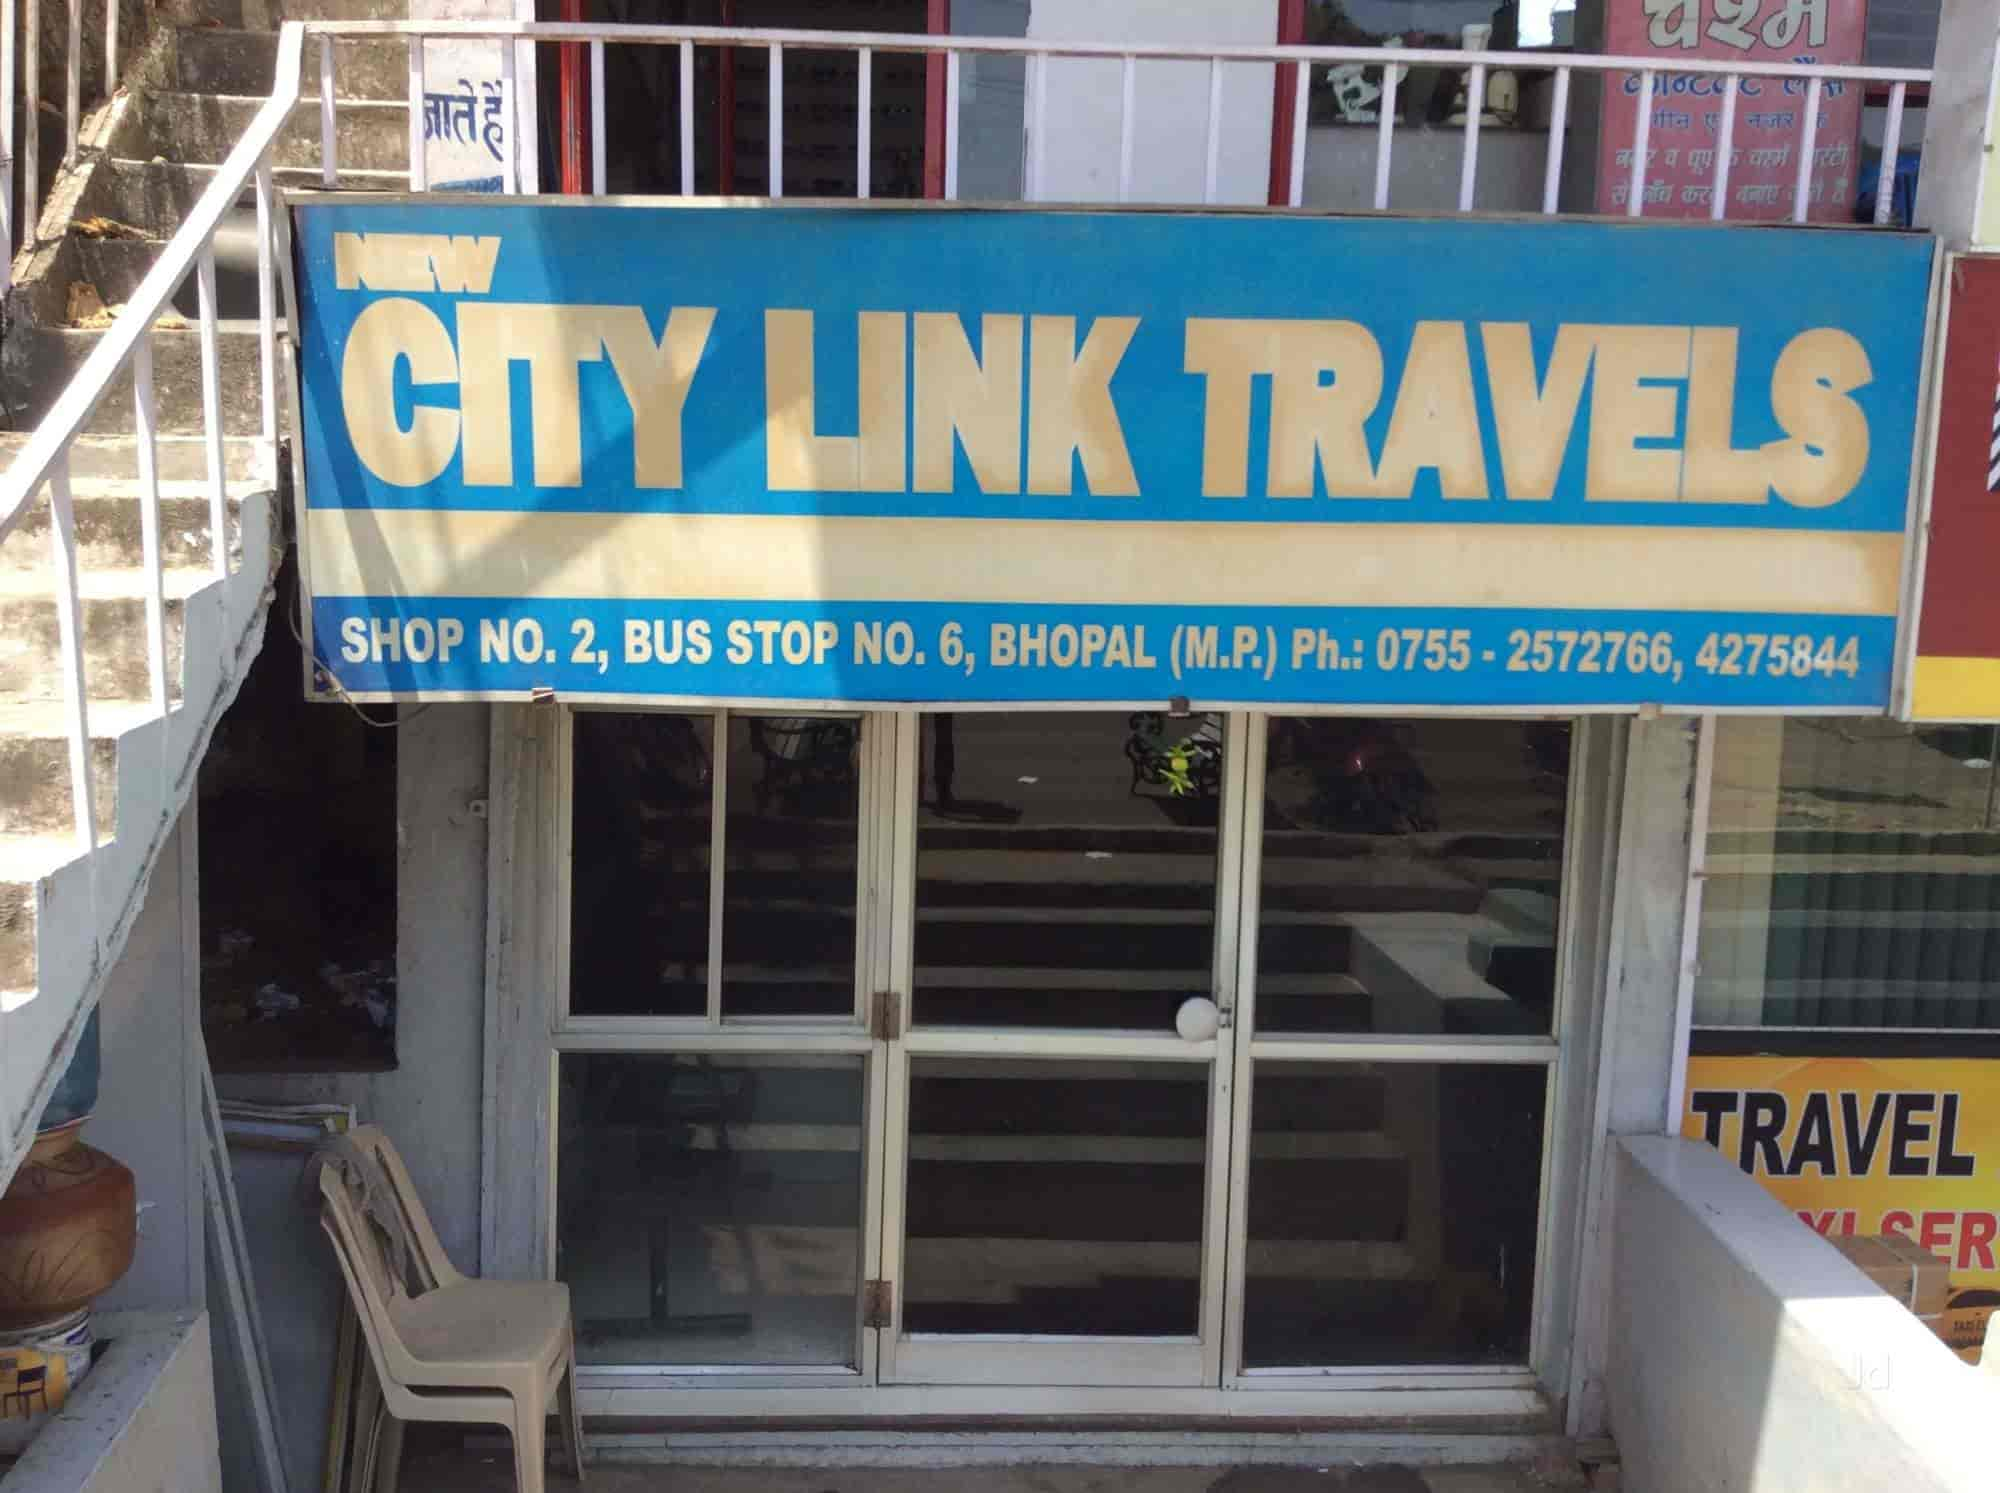 Chain stores Citylink: reviews, addresses 10